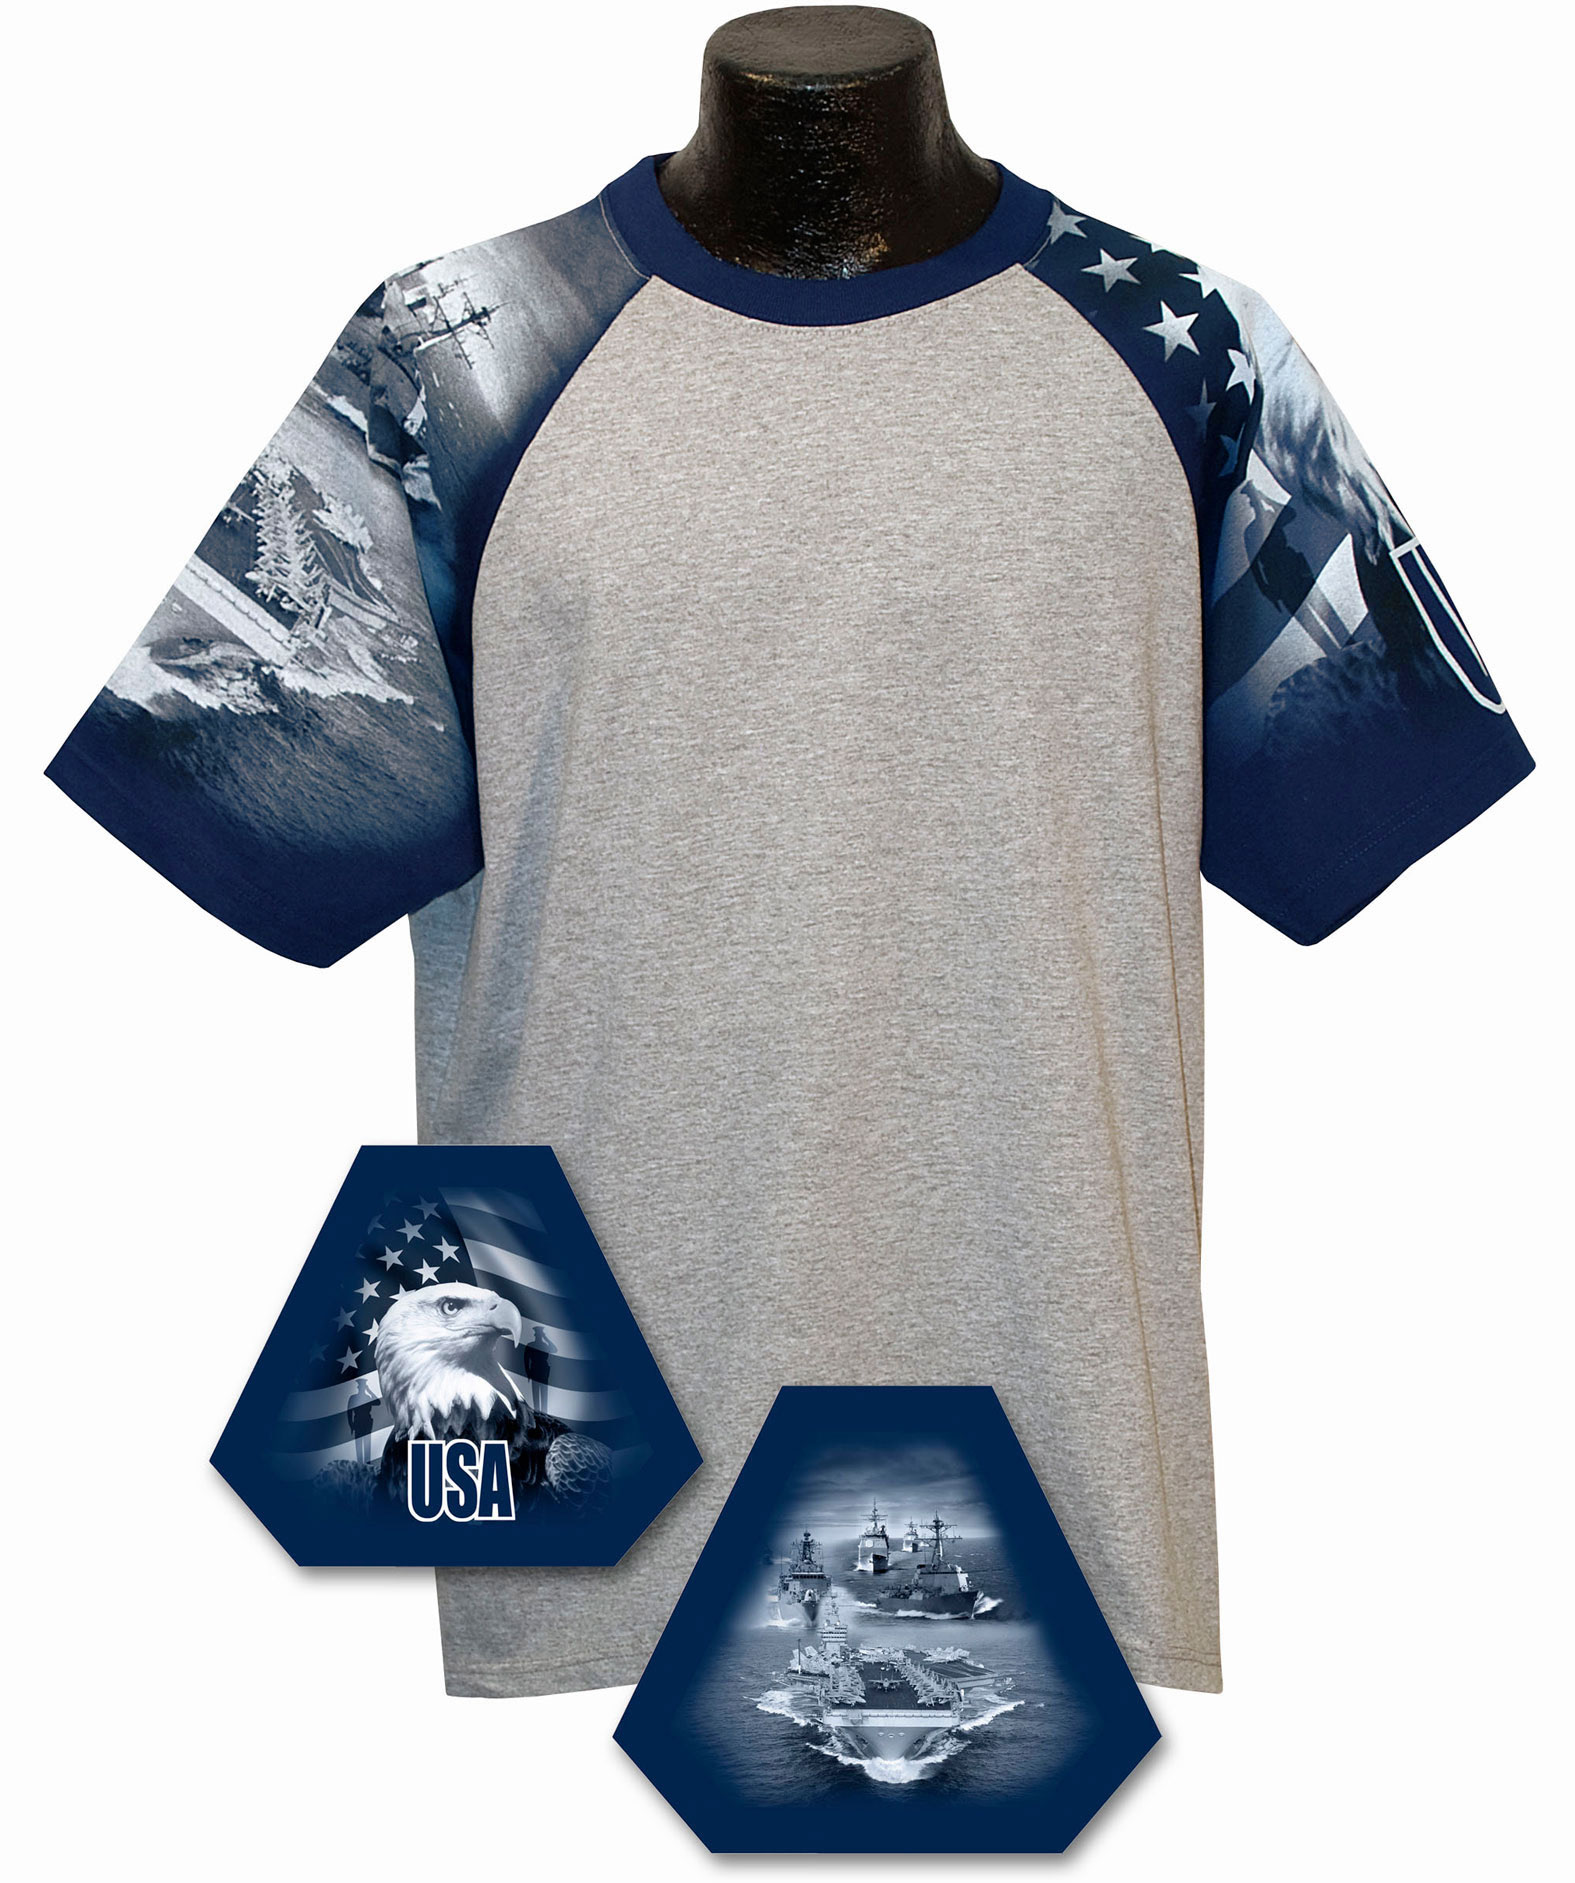 Adult Navy Design Tshirt